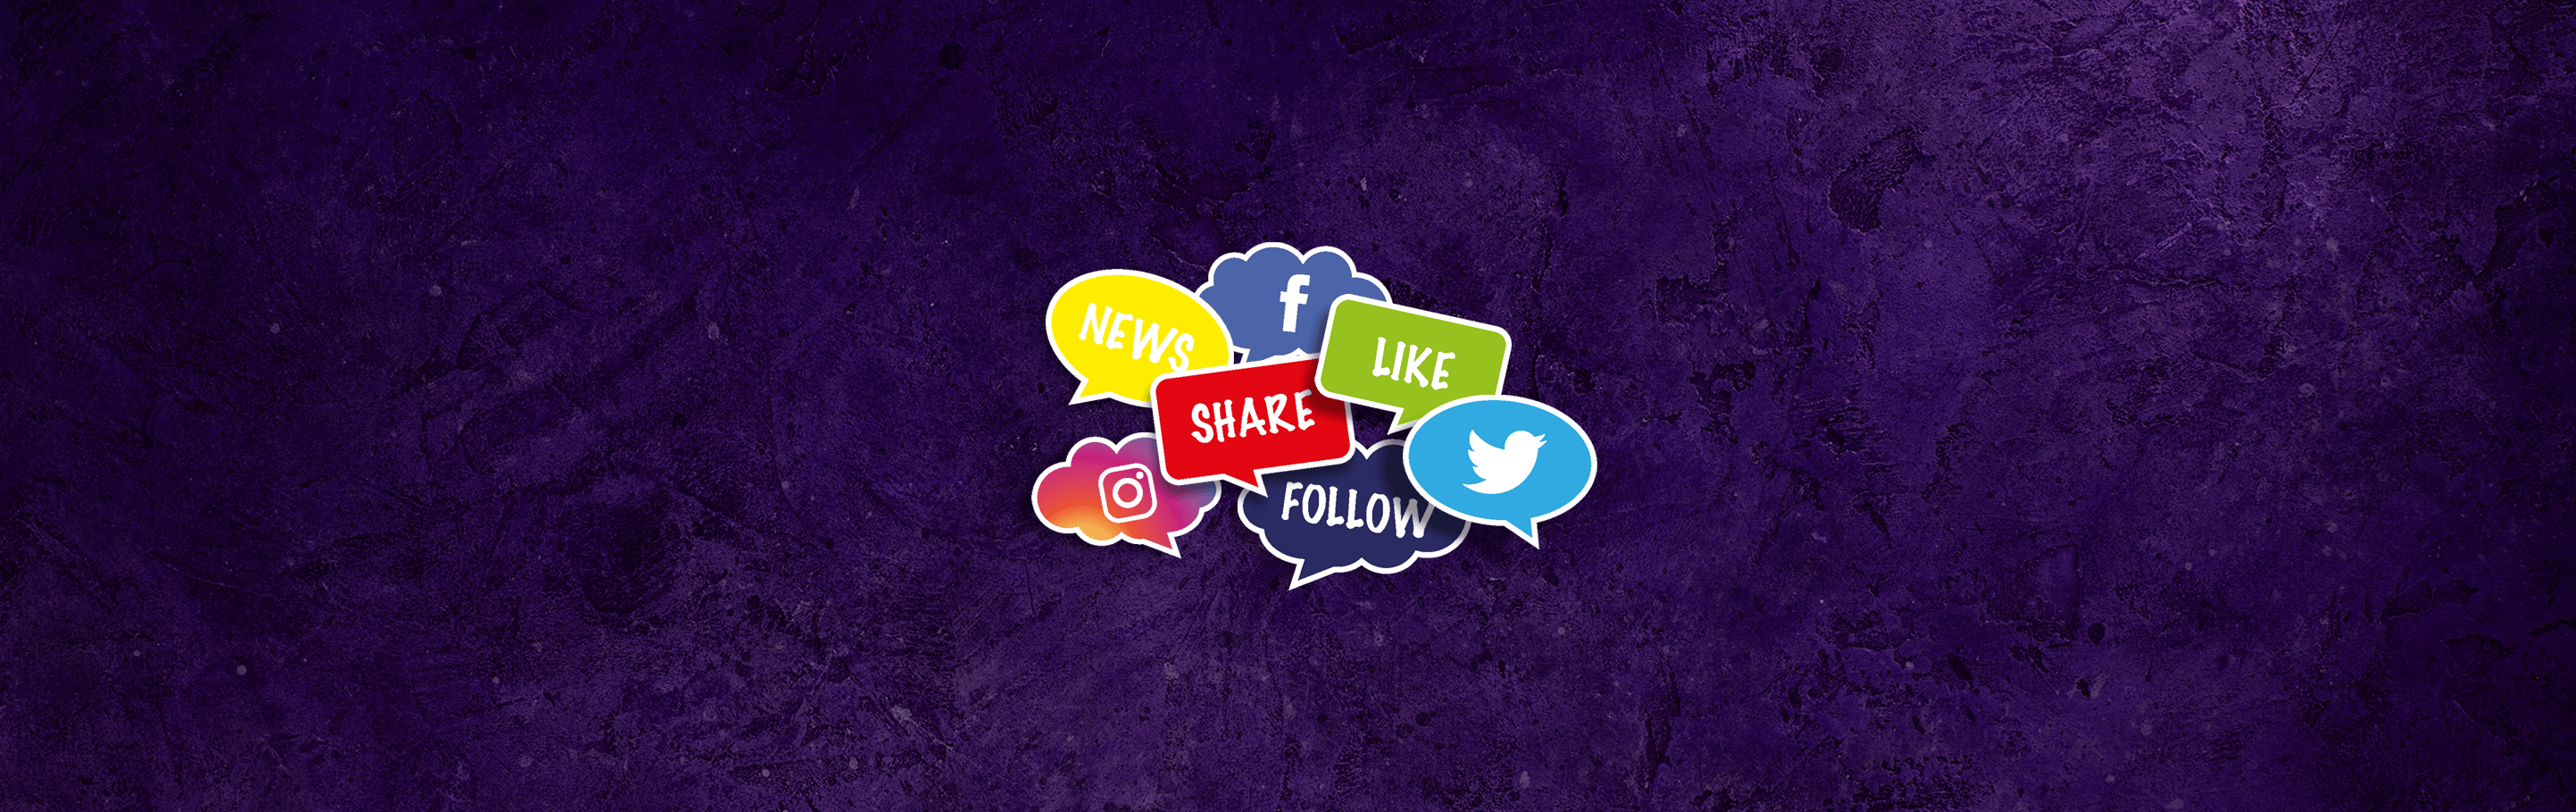 5 Top Tips To Improve Your Business's Social Media